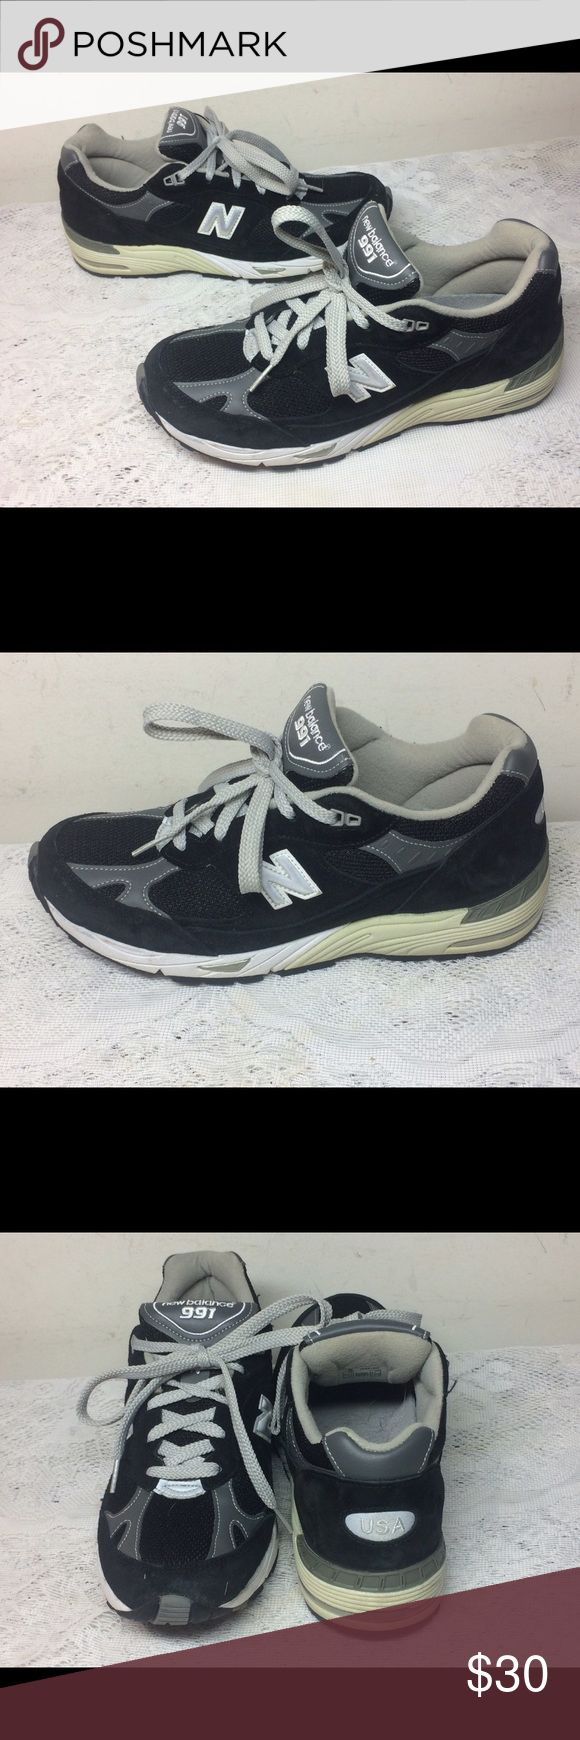 WOMEN'S NEW BALANCE W991BK RUNNING SHOES SIZE 9.5 Excellent Used Condition,  No Wear or Tear